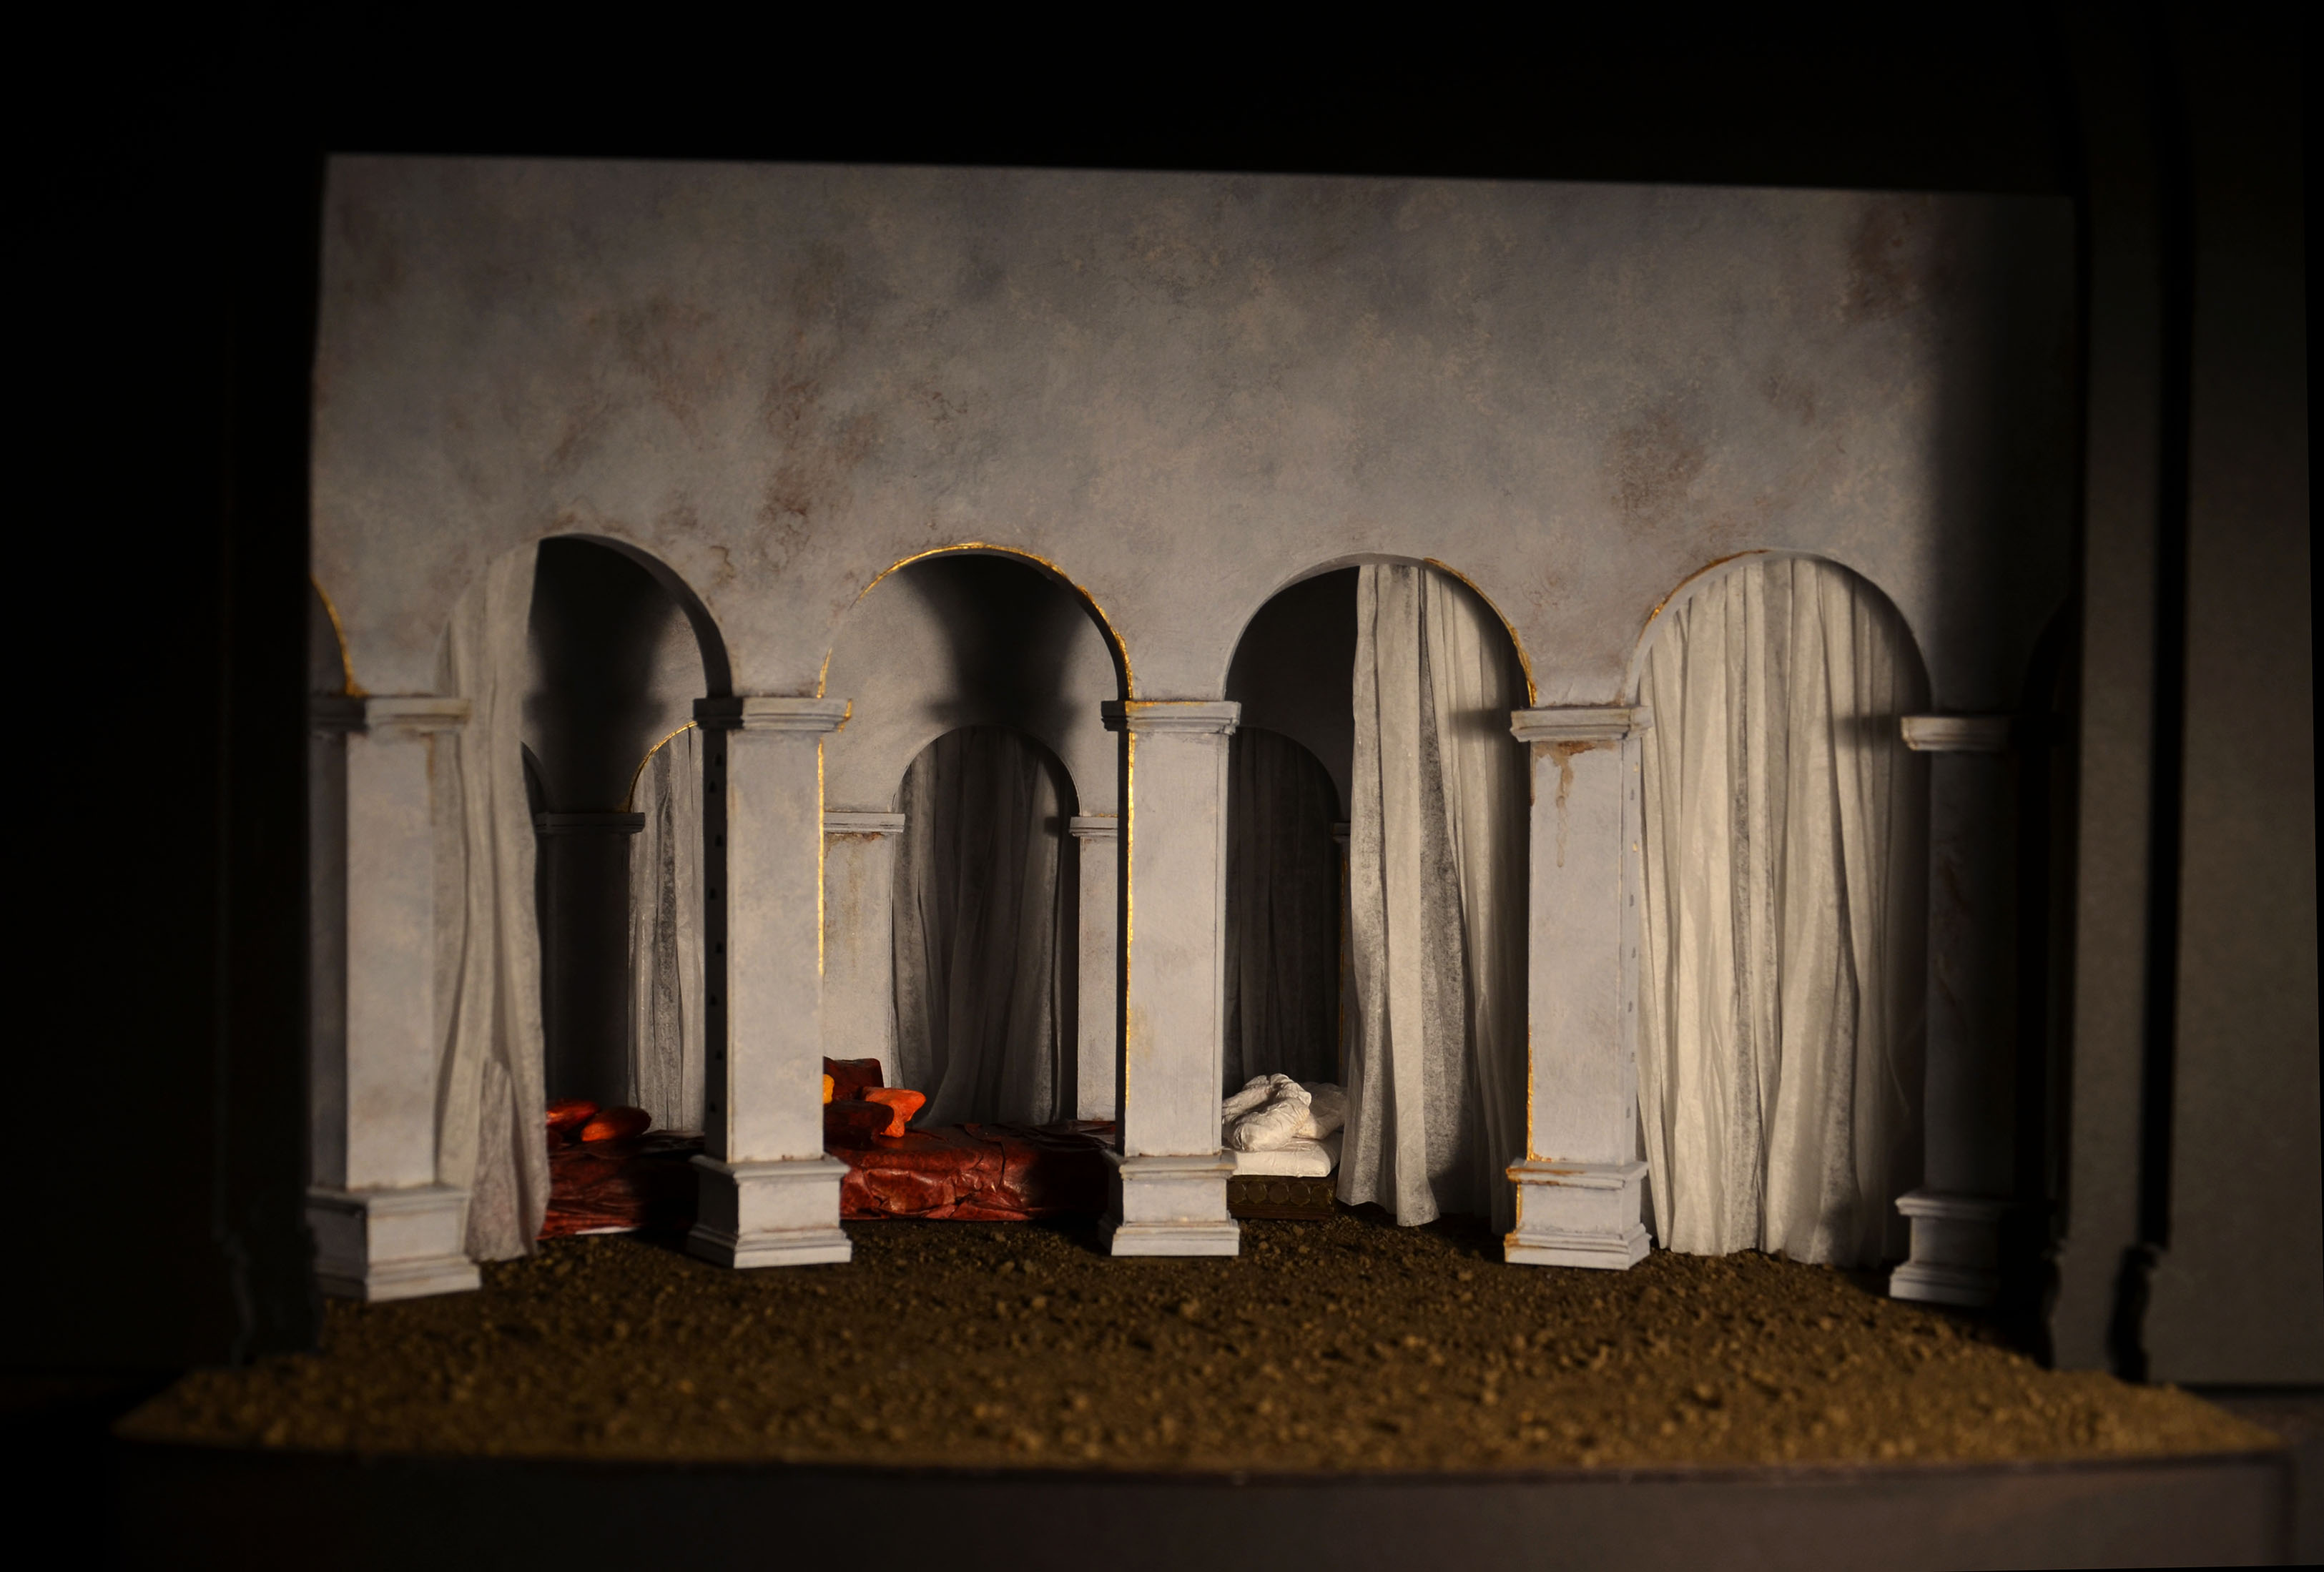 Othello and Desdemona's bed